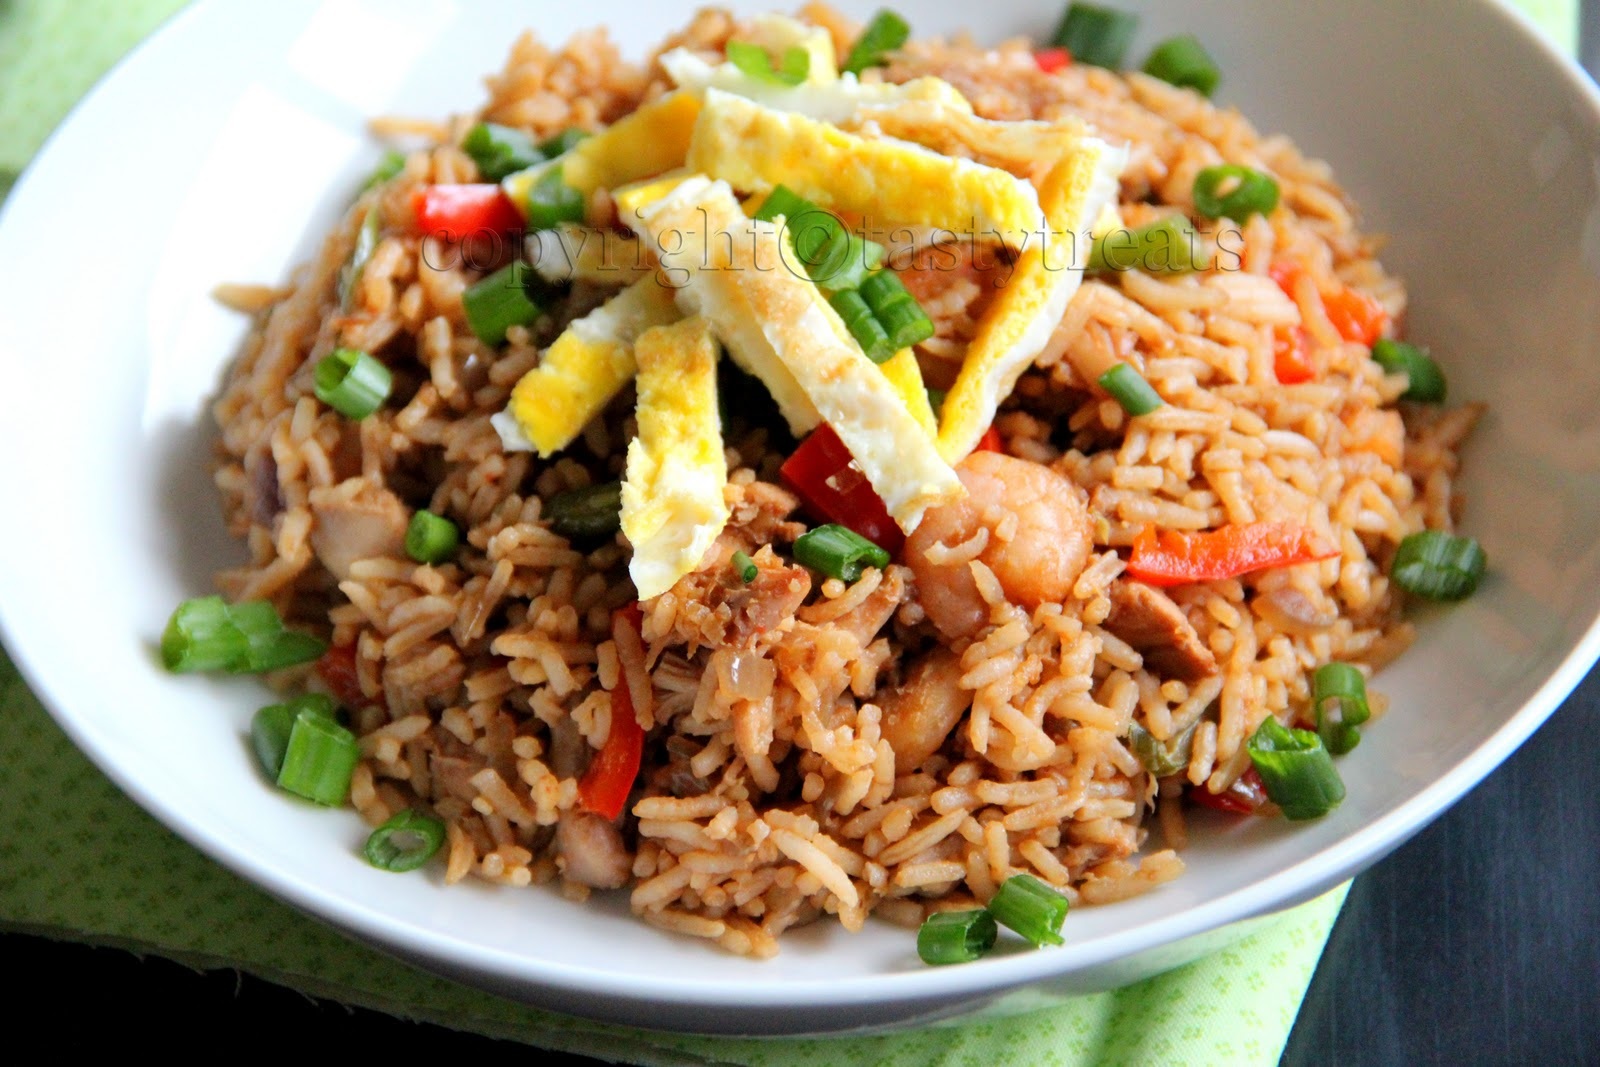 ... spicy fried noodles nasi goreng with smoked tim anderson s nasi goreng